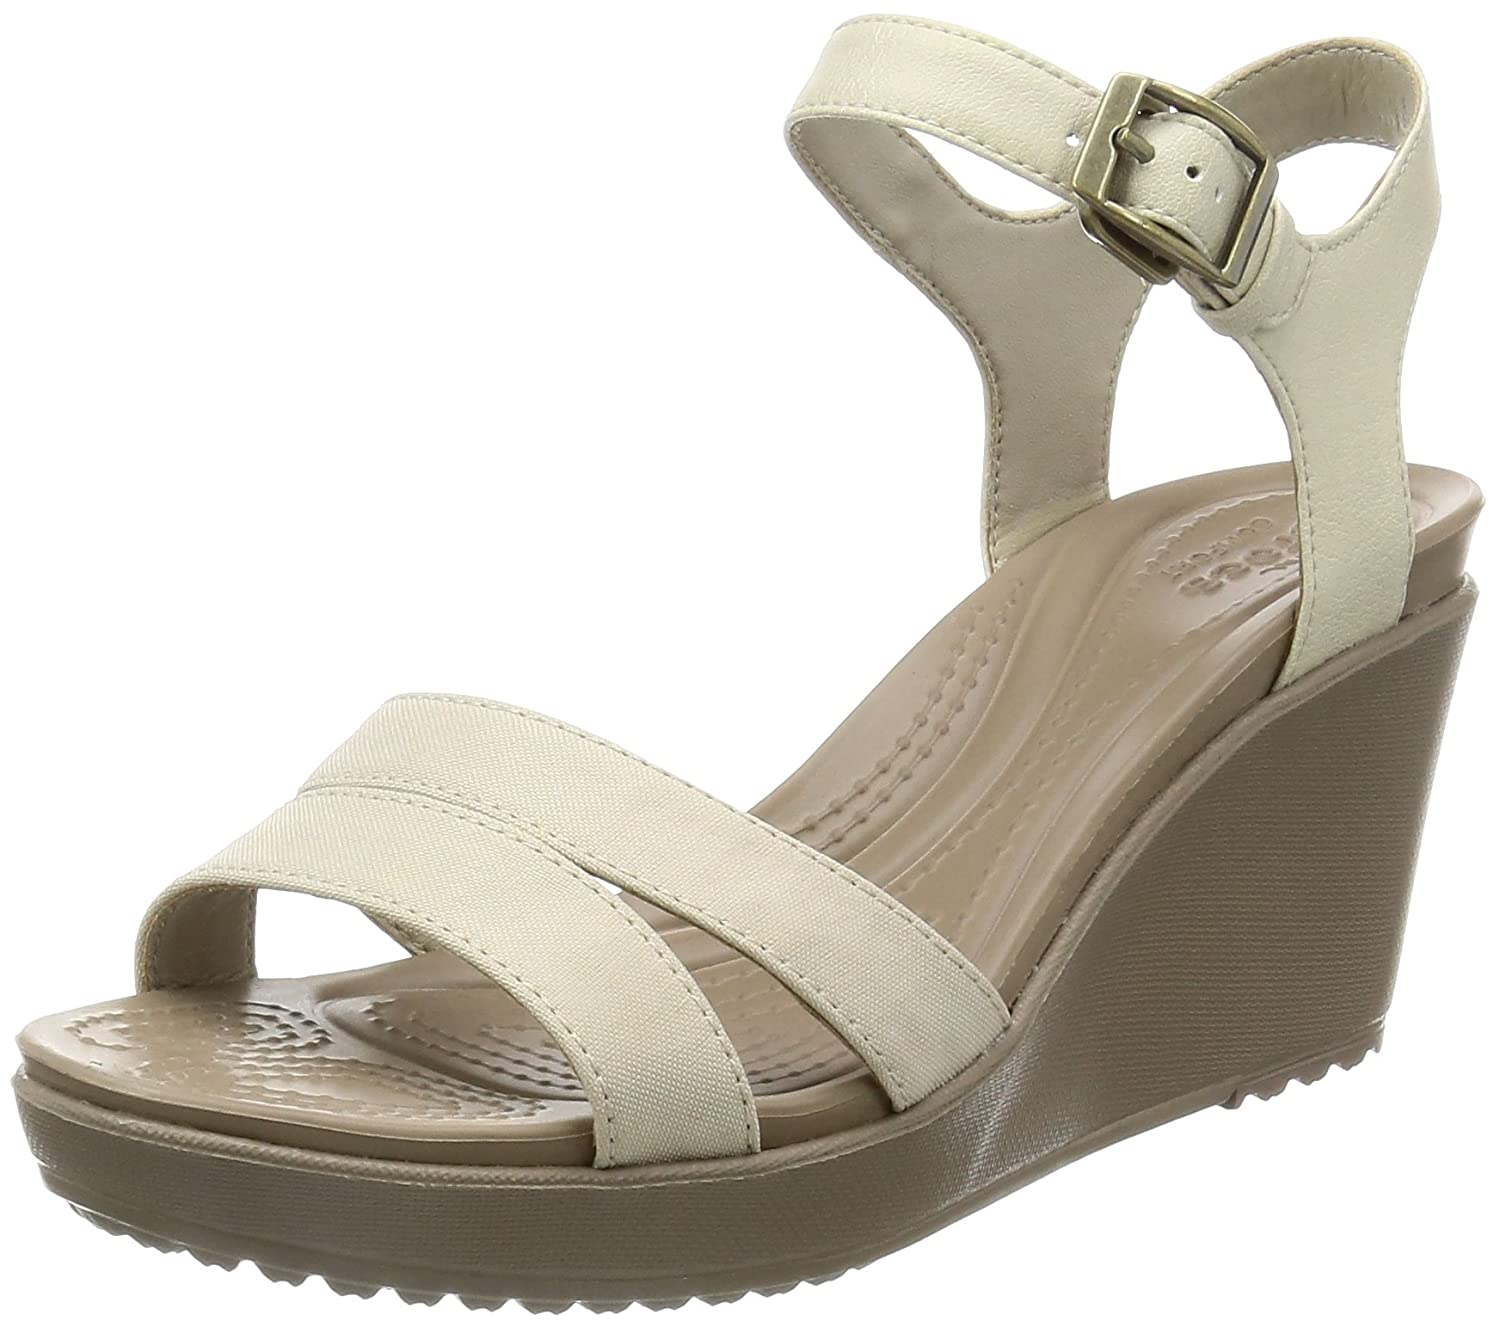 Oatmeal Khaki crocs Women's Leigh II Ankle Strap W Wedge Sandal